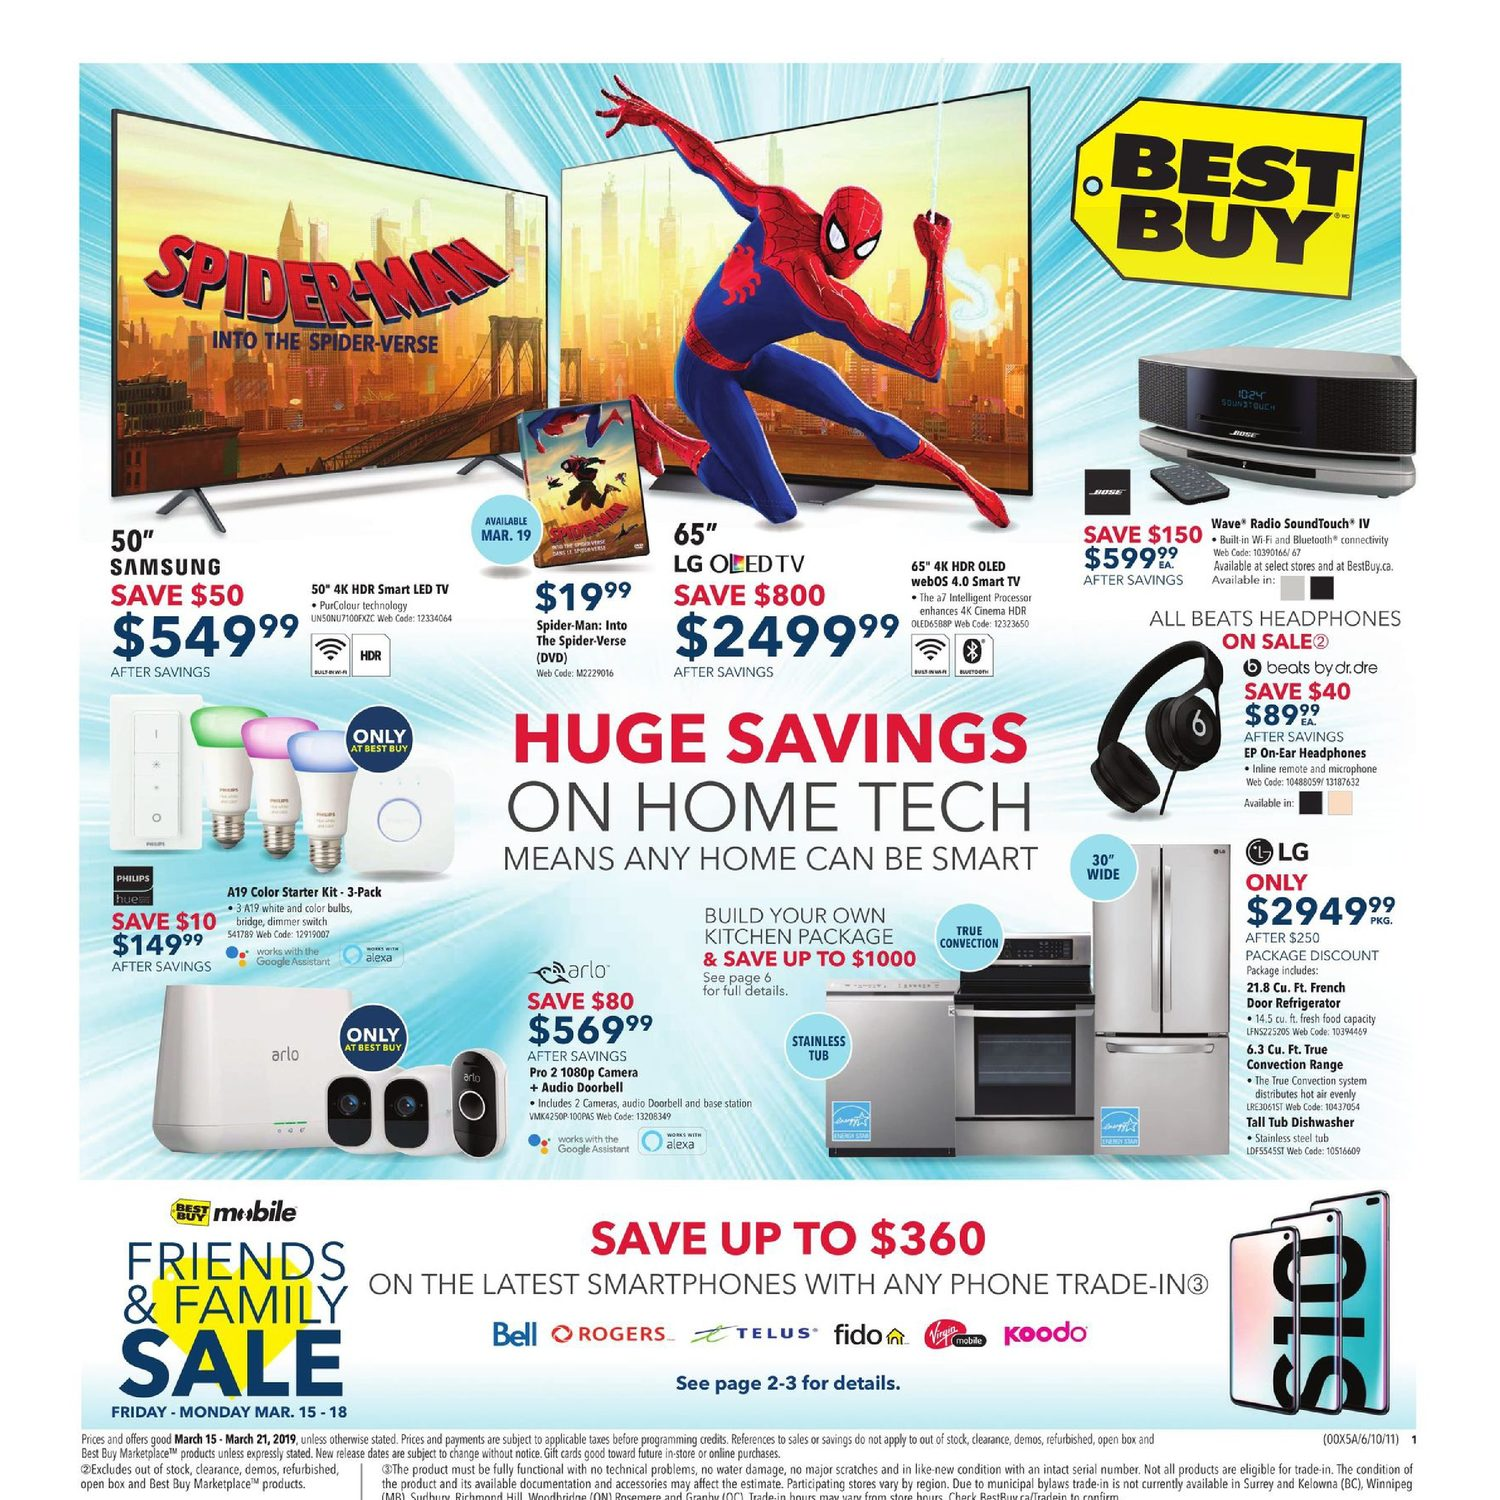 Best Buy Weekly Flyer - Weekly - Huge Savings on Home Tech - Mar 15